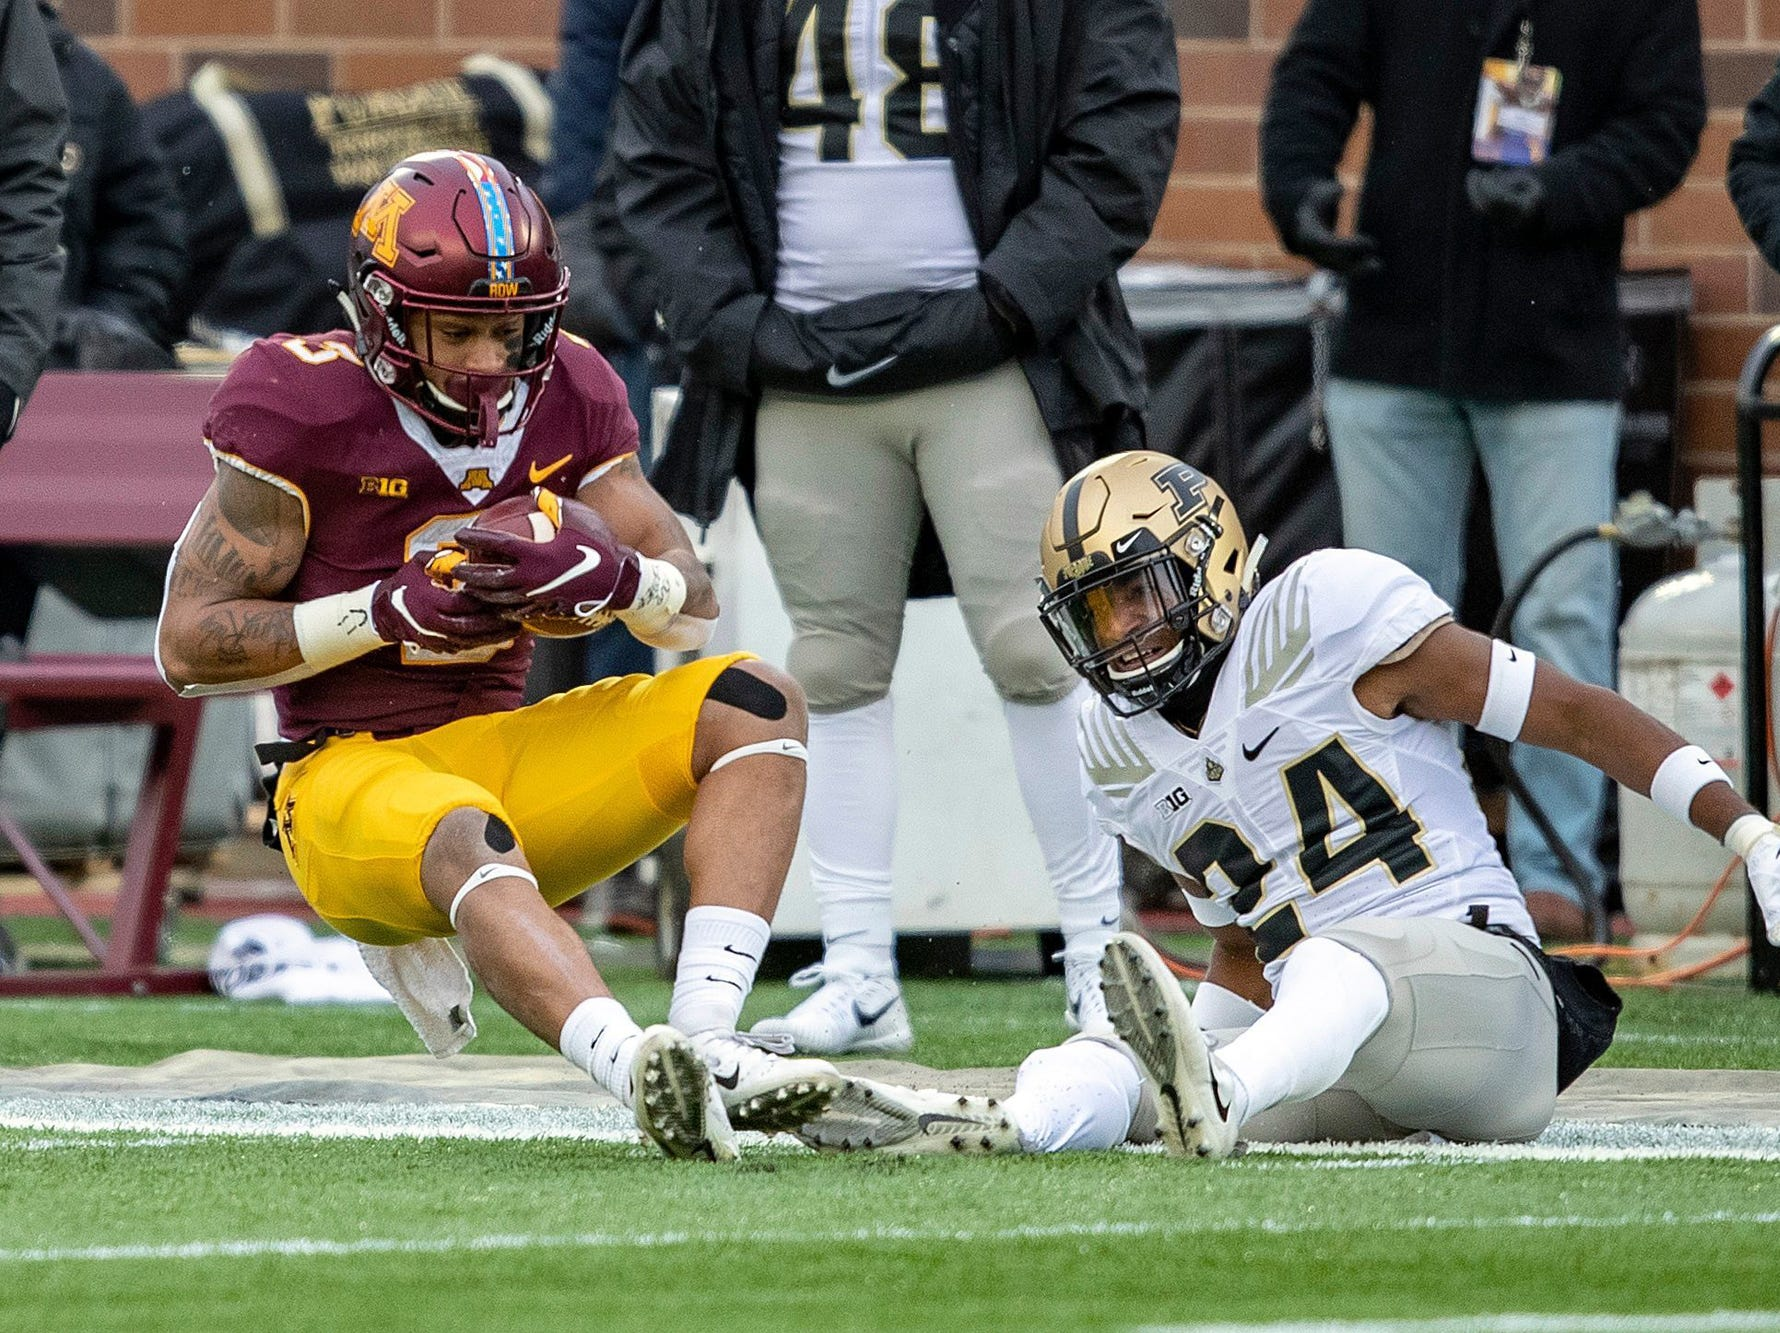 Minnesota's Chris Autman-Bell hauls in a pass against Purdue cornerback Tim Cason.